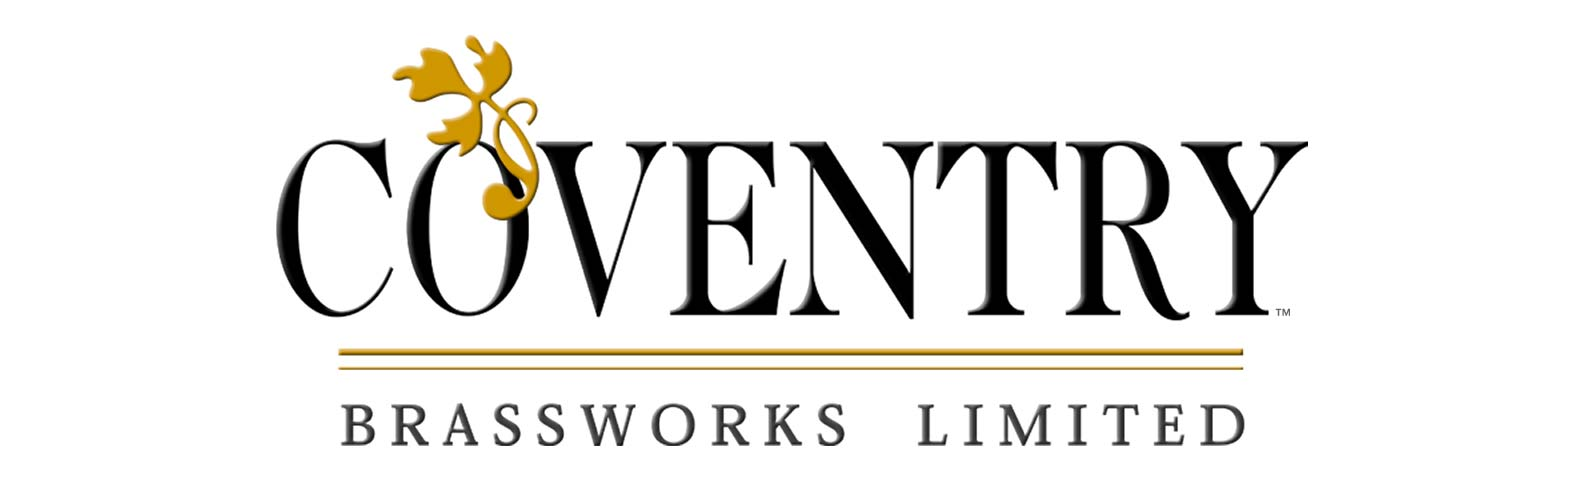 Coventry Brassworks Limited